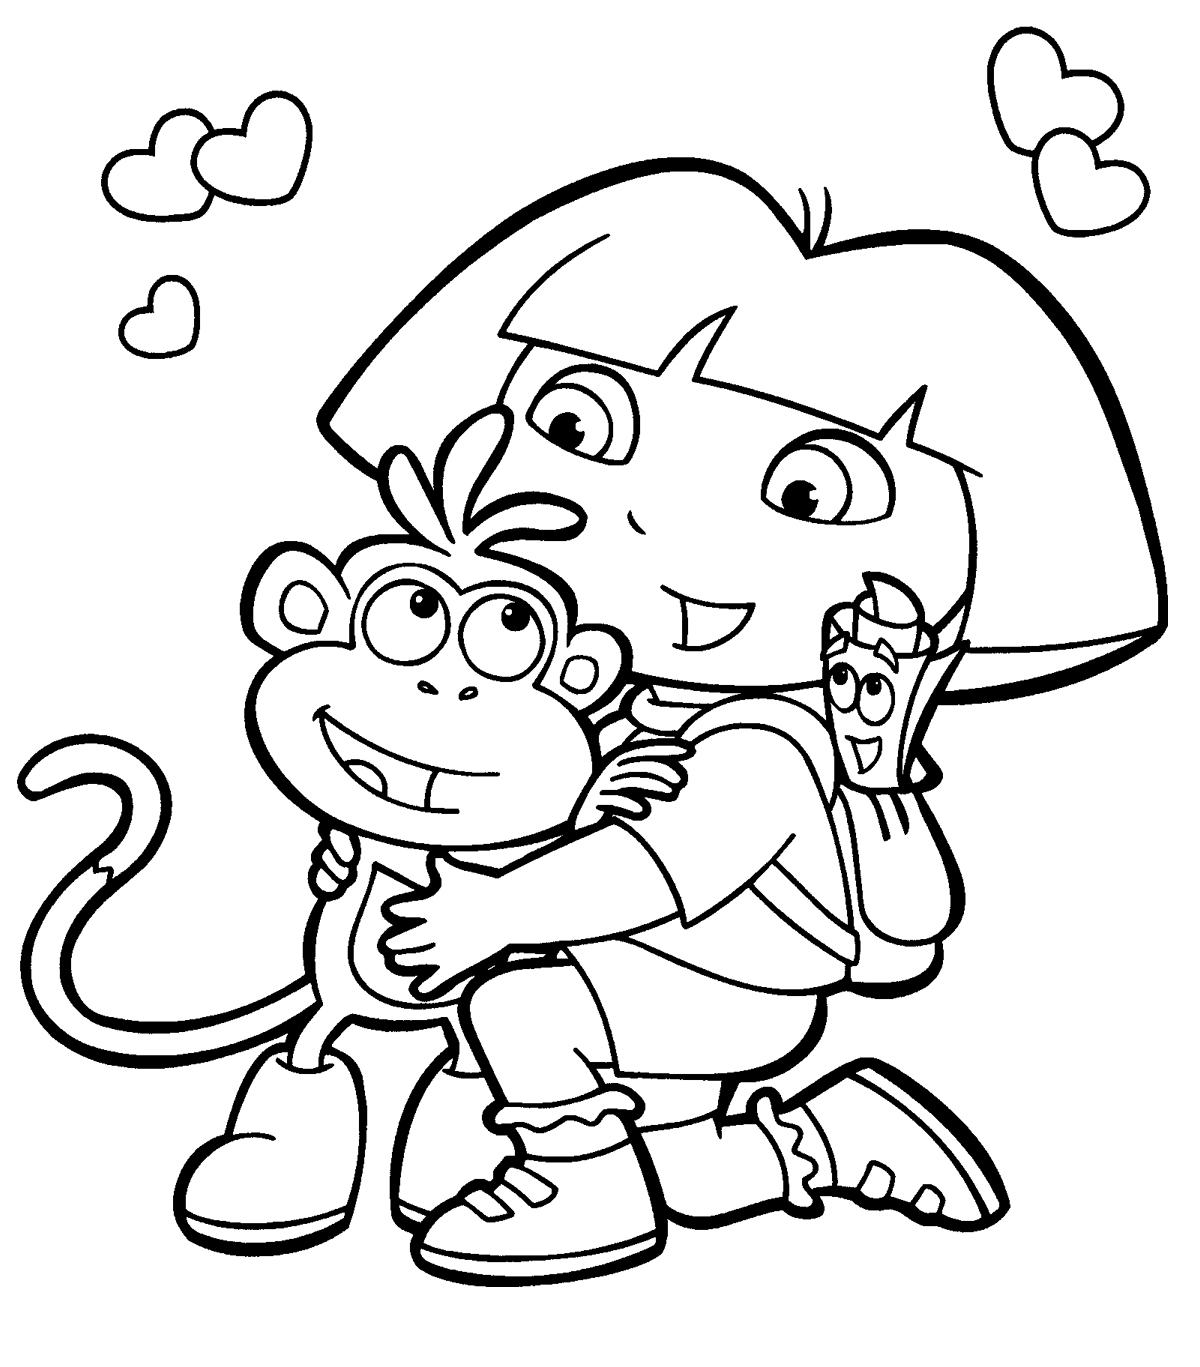 Coloring pages info